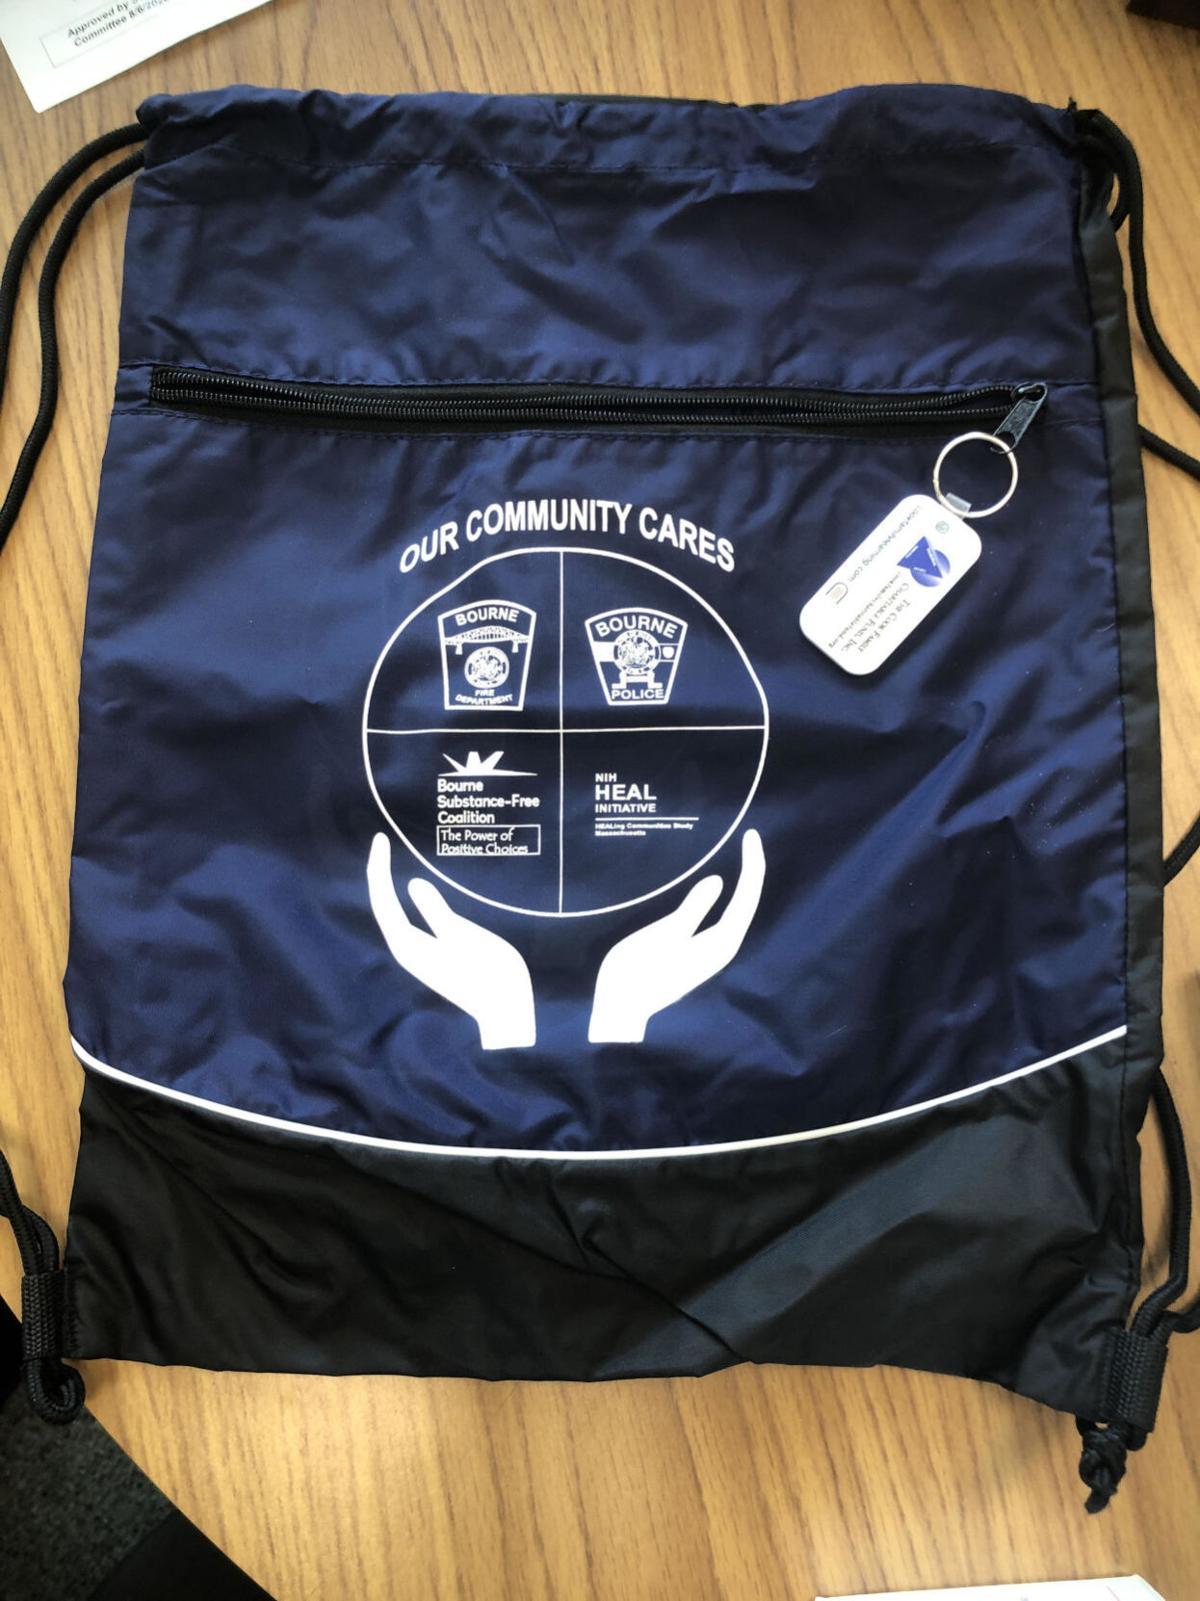 Substance Abuse Support Bags